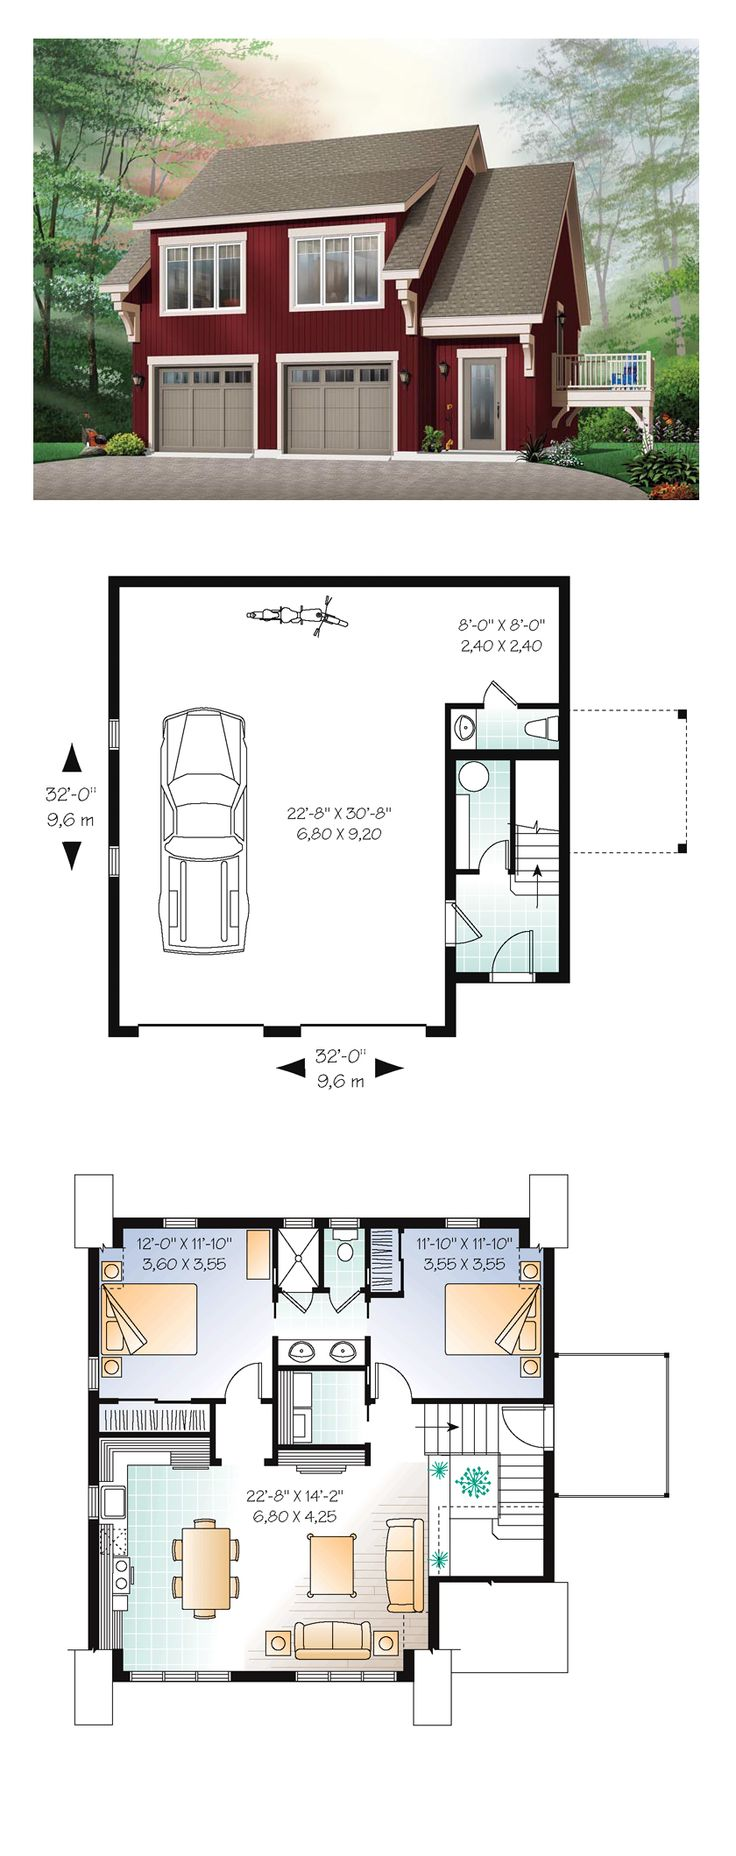 25 best ideas about garage apartment plans on pinterest for Garage studio apartment plans